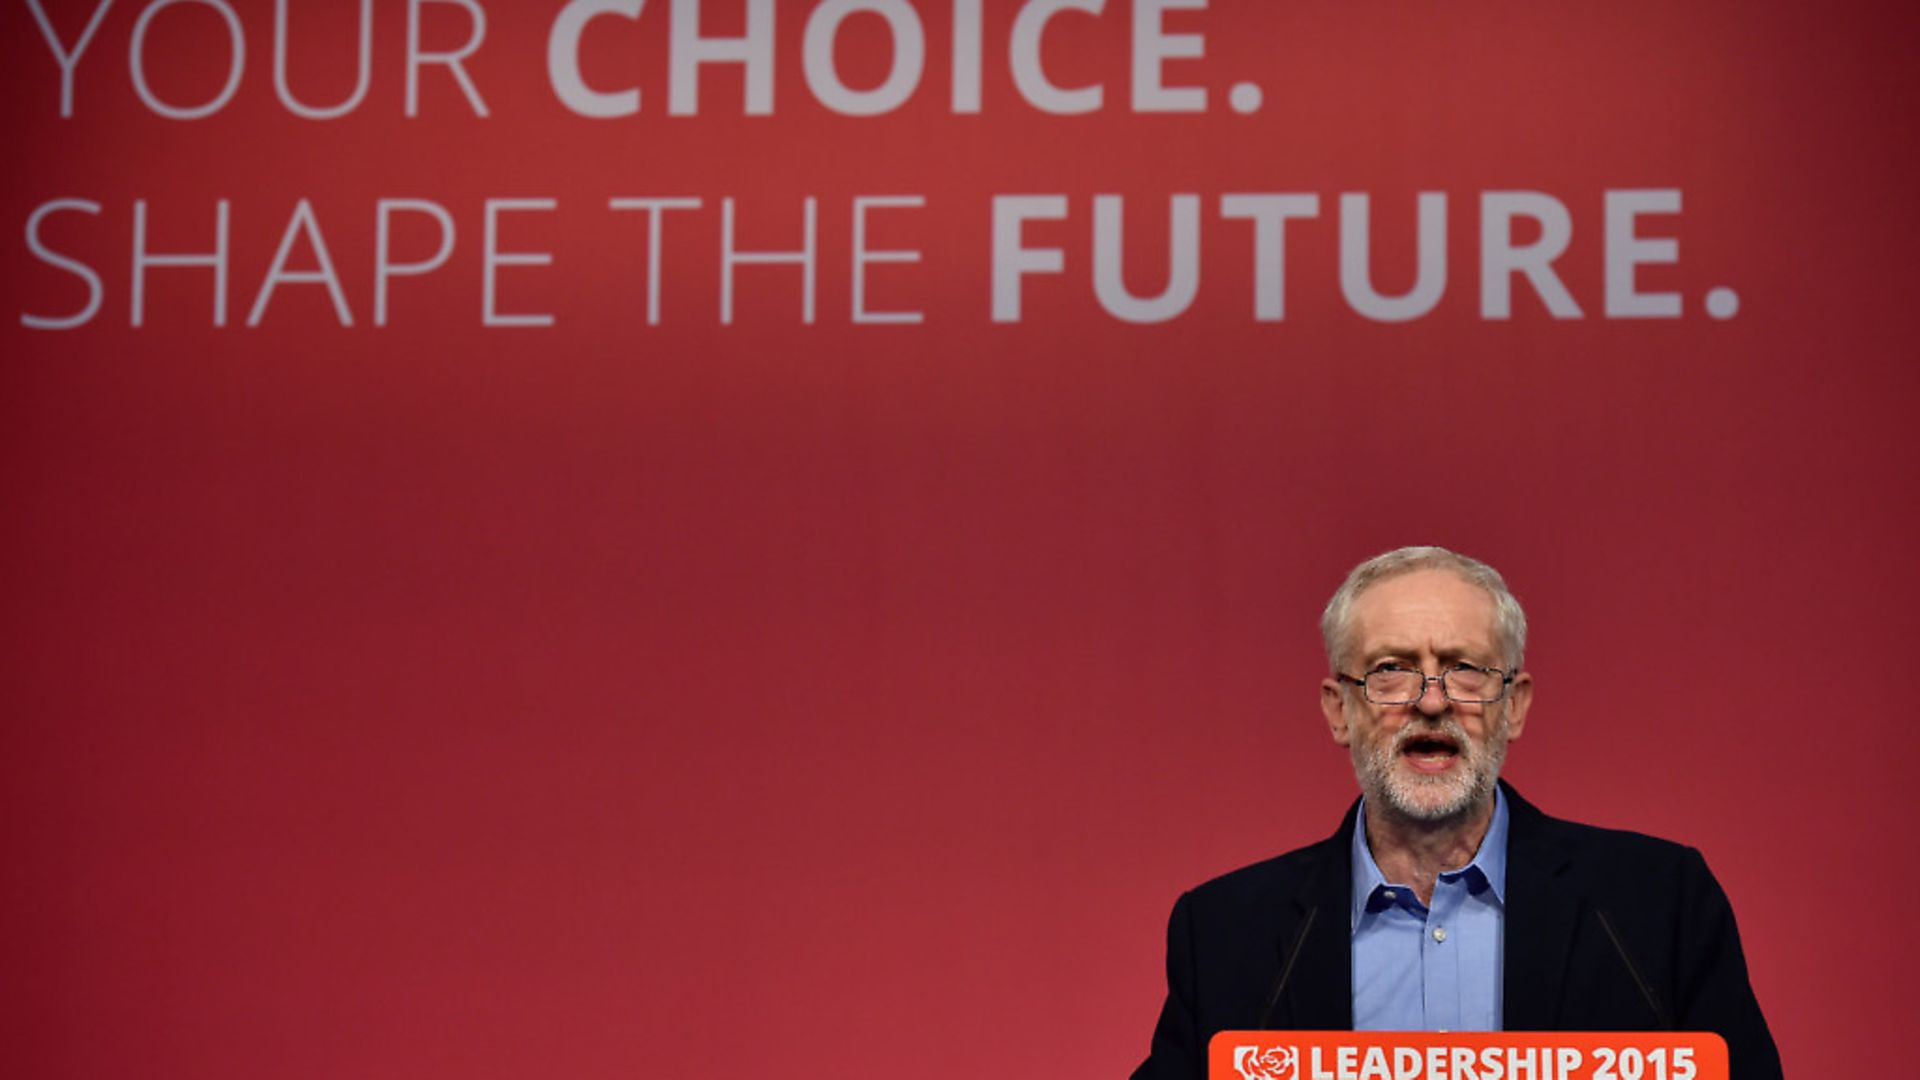 Jeremy Corbyn at a Labour Party leadership event. Photograph: Ben Stanstall/AFP/Getty Images. - Credit: AFP/Getty Images